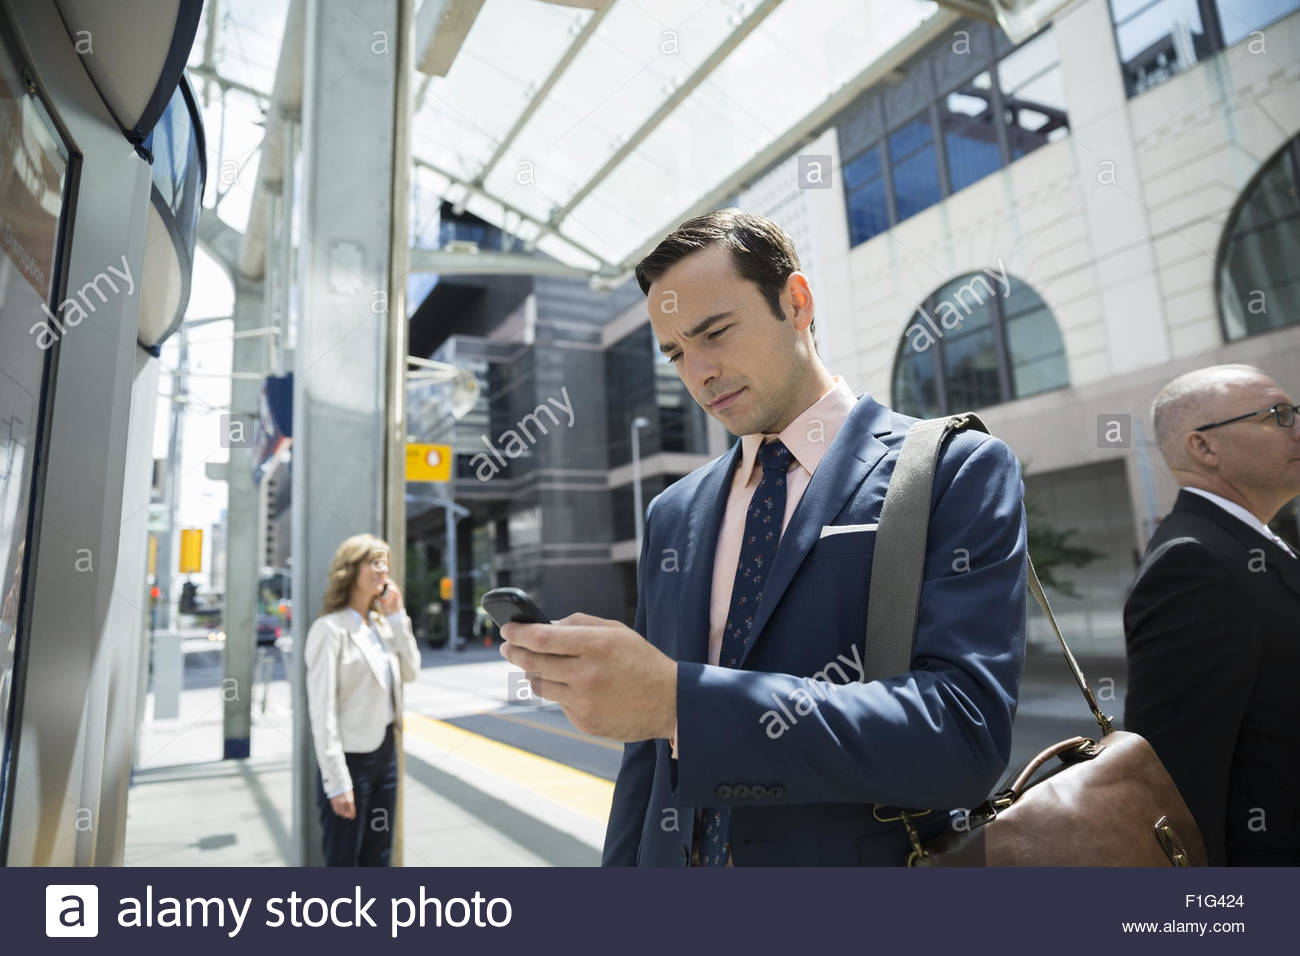 Businessman texting with cell phone at train station Stock Photo